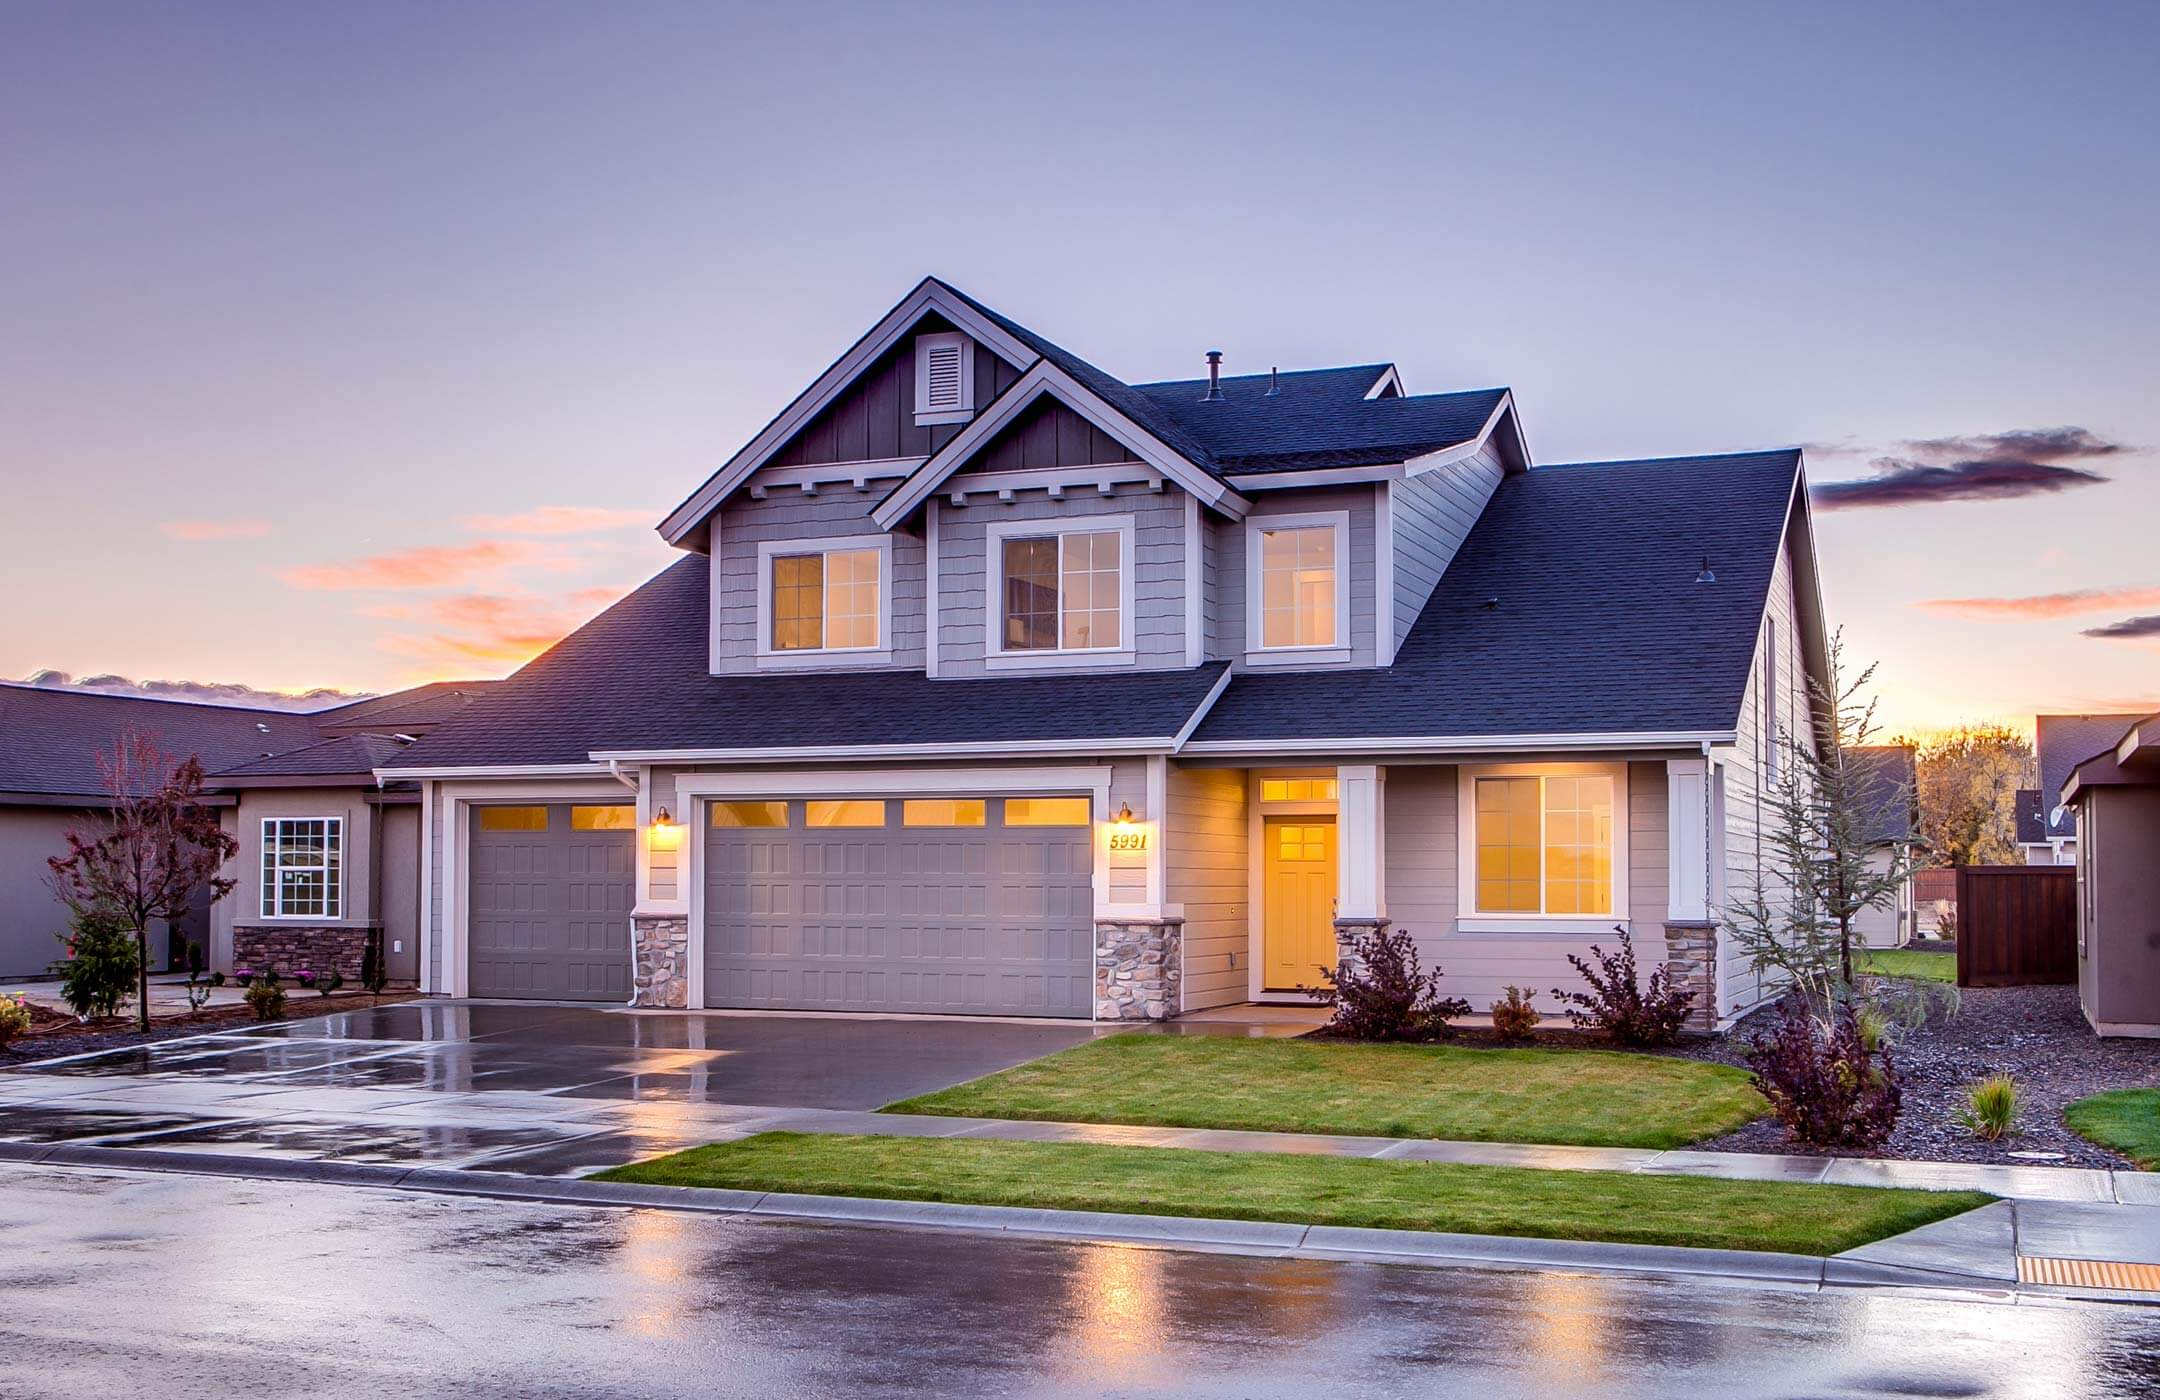 How to find a Reliable Agent when Moving to a New State?